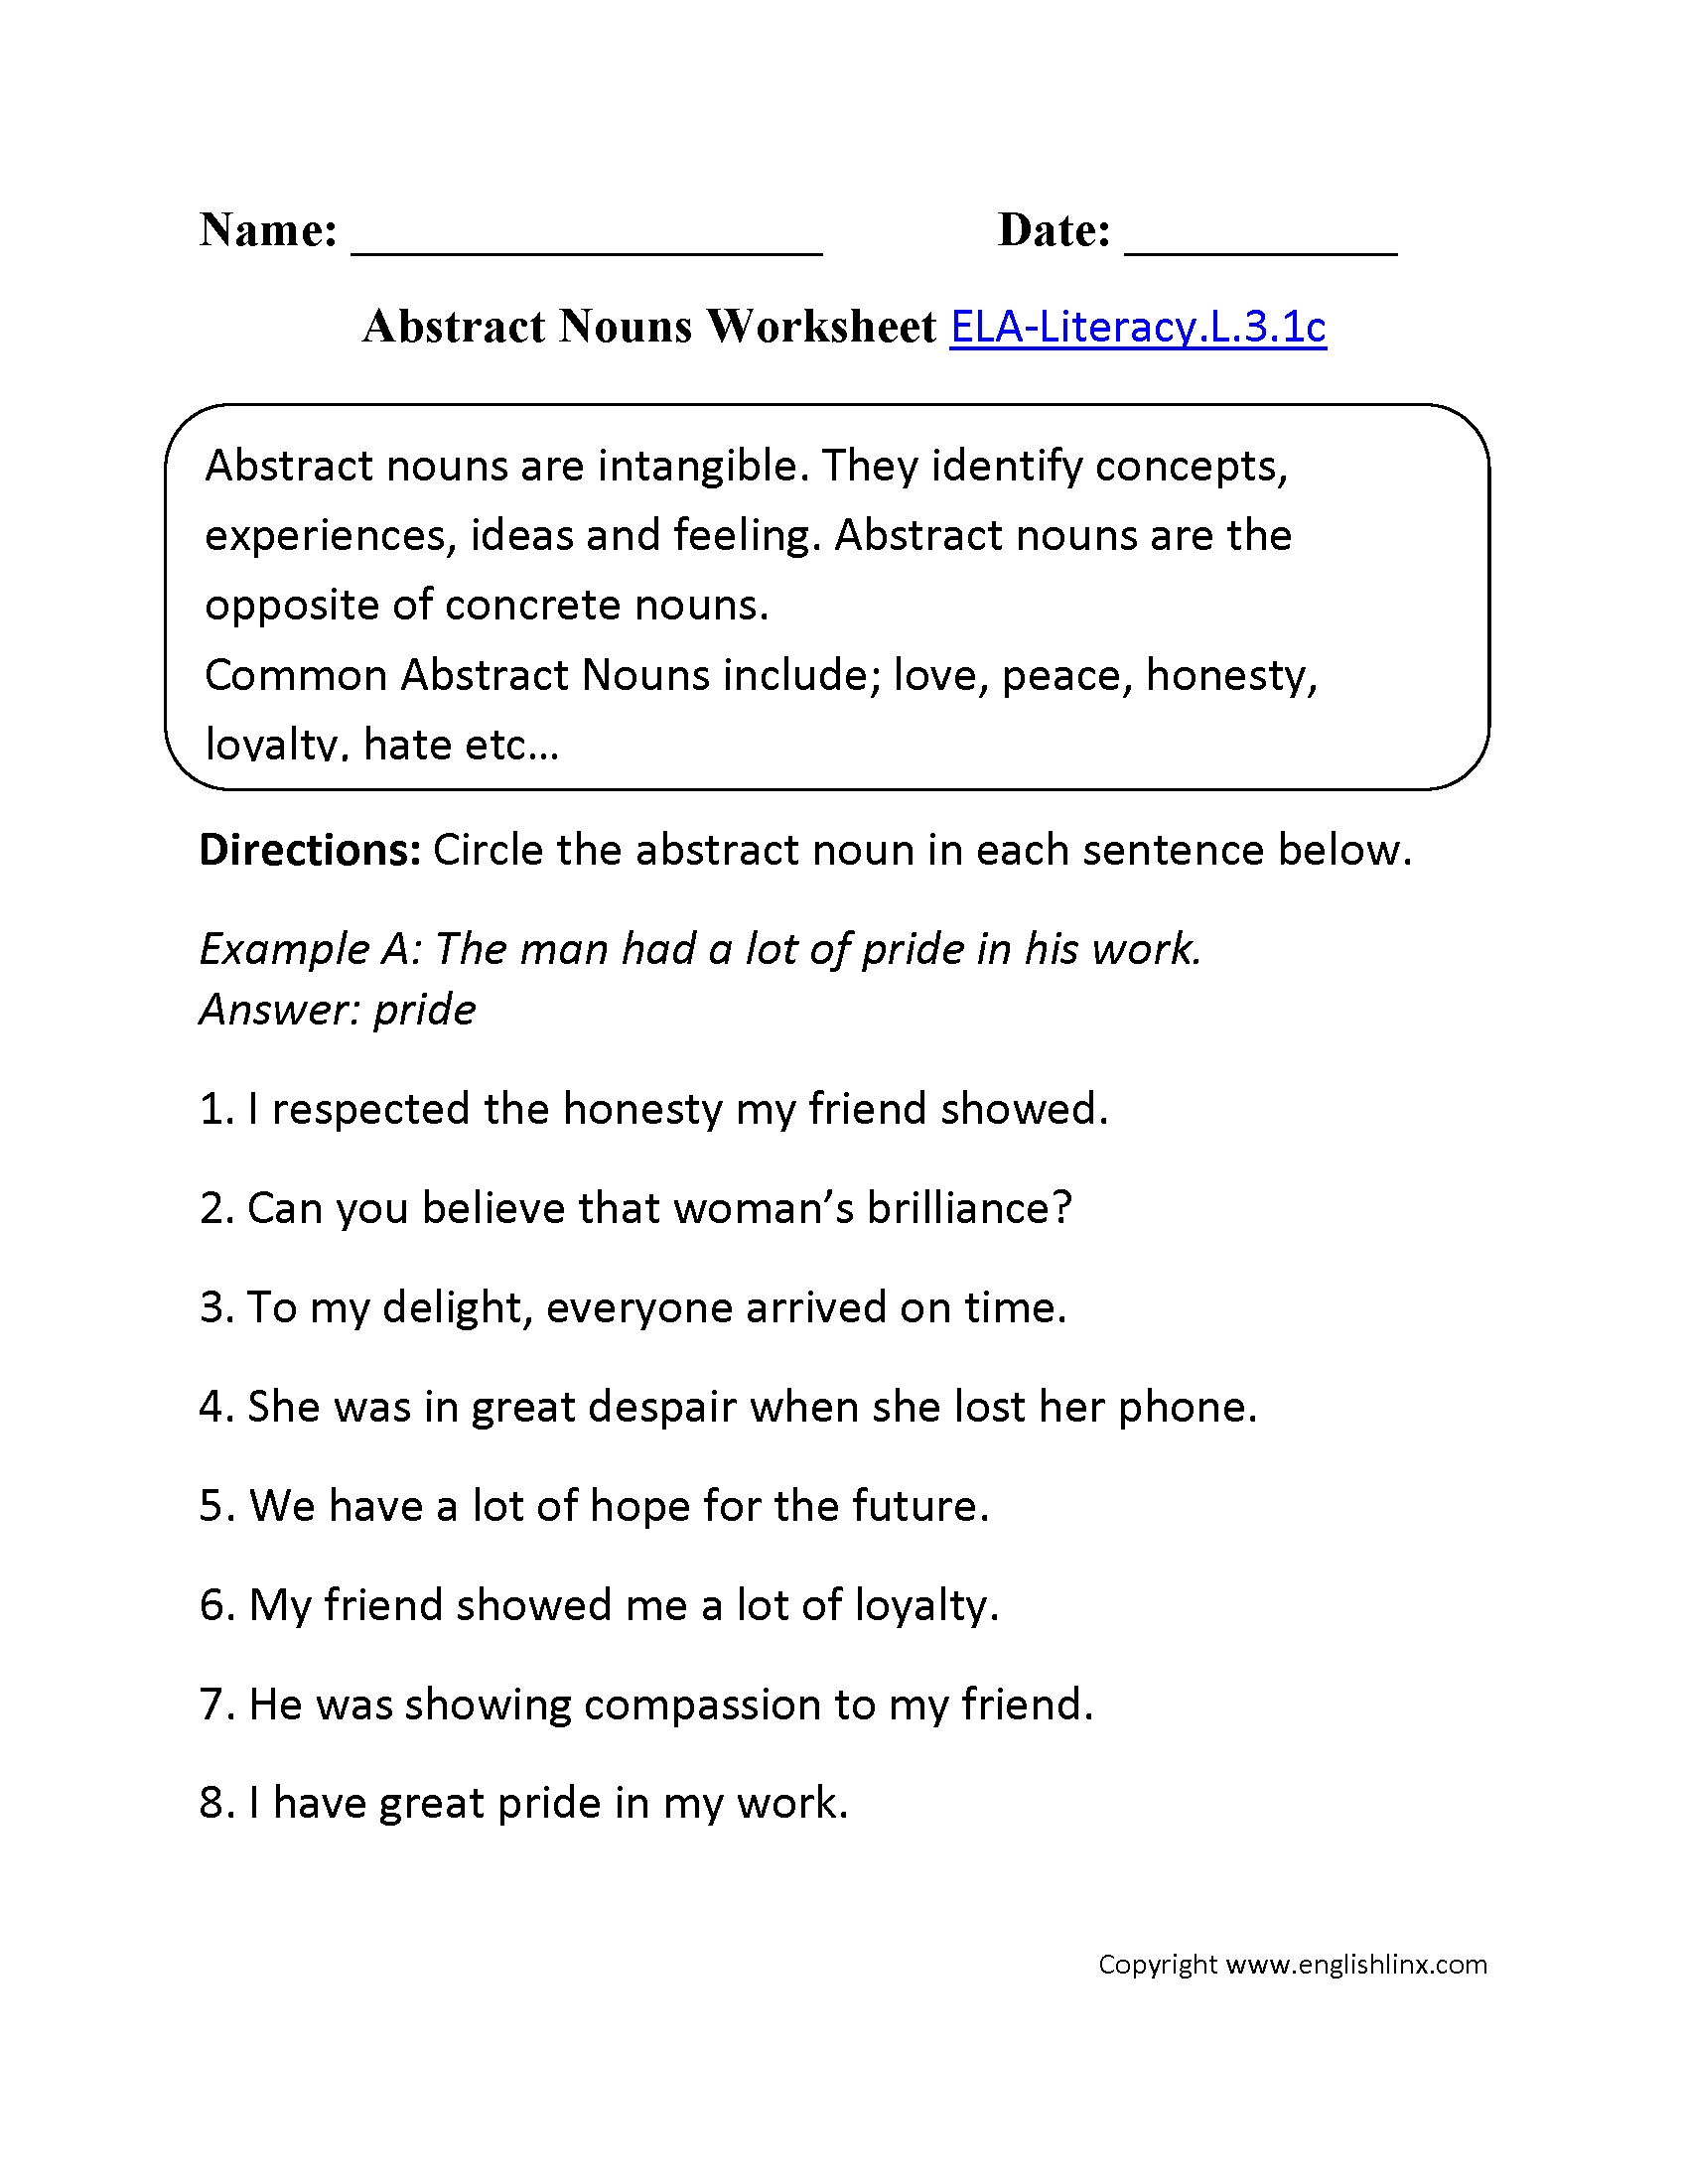 Abstract Nouns Worksheet 1 ELA-Literacy.L.3.1c Language Worksheet